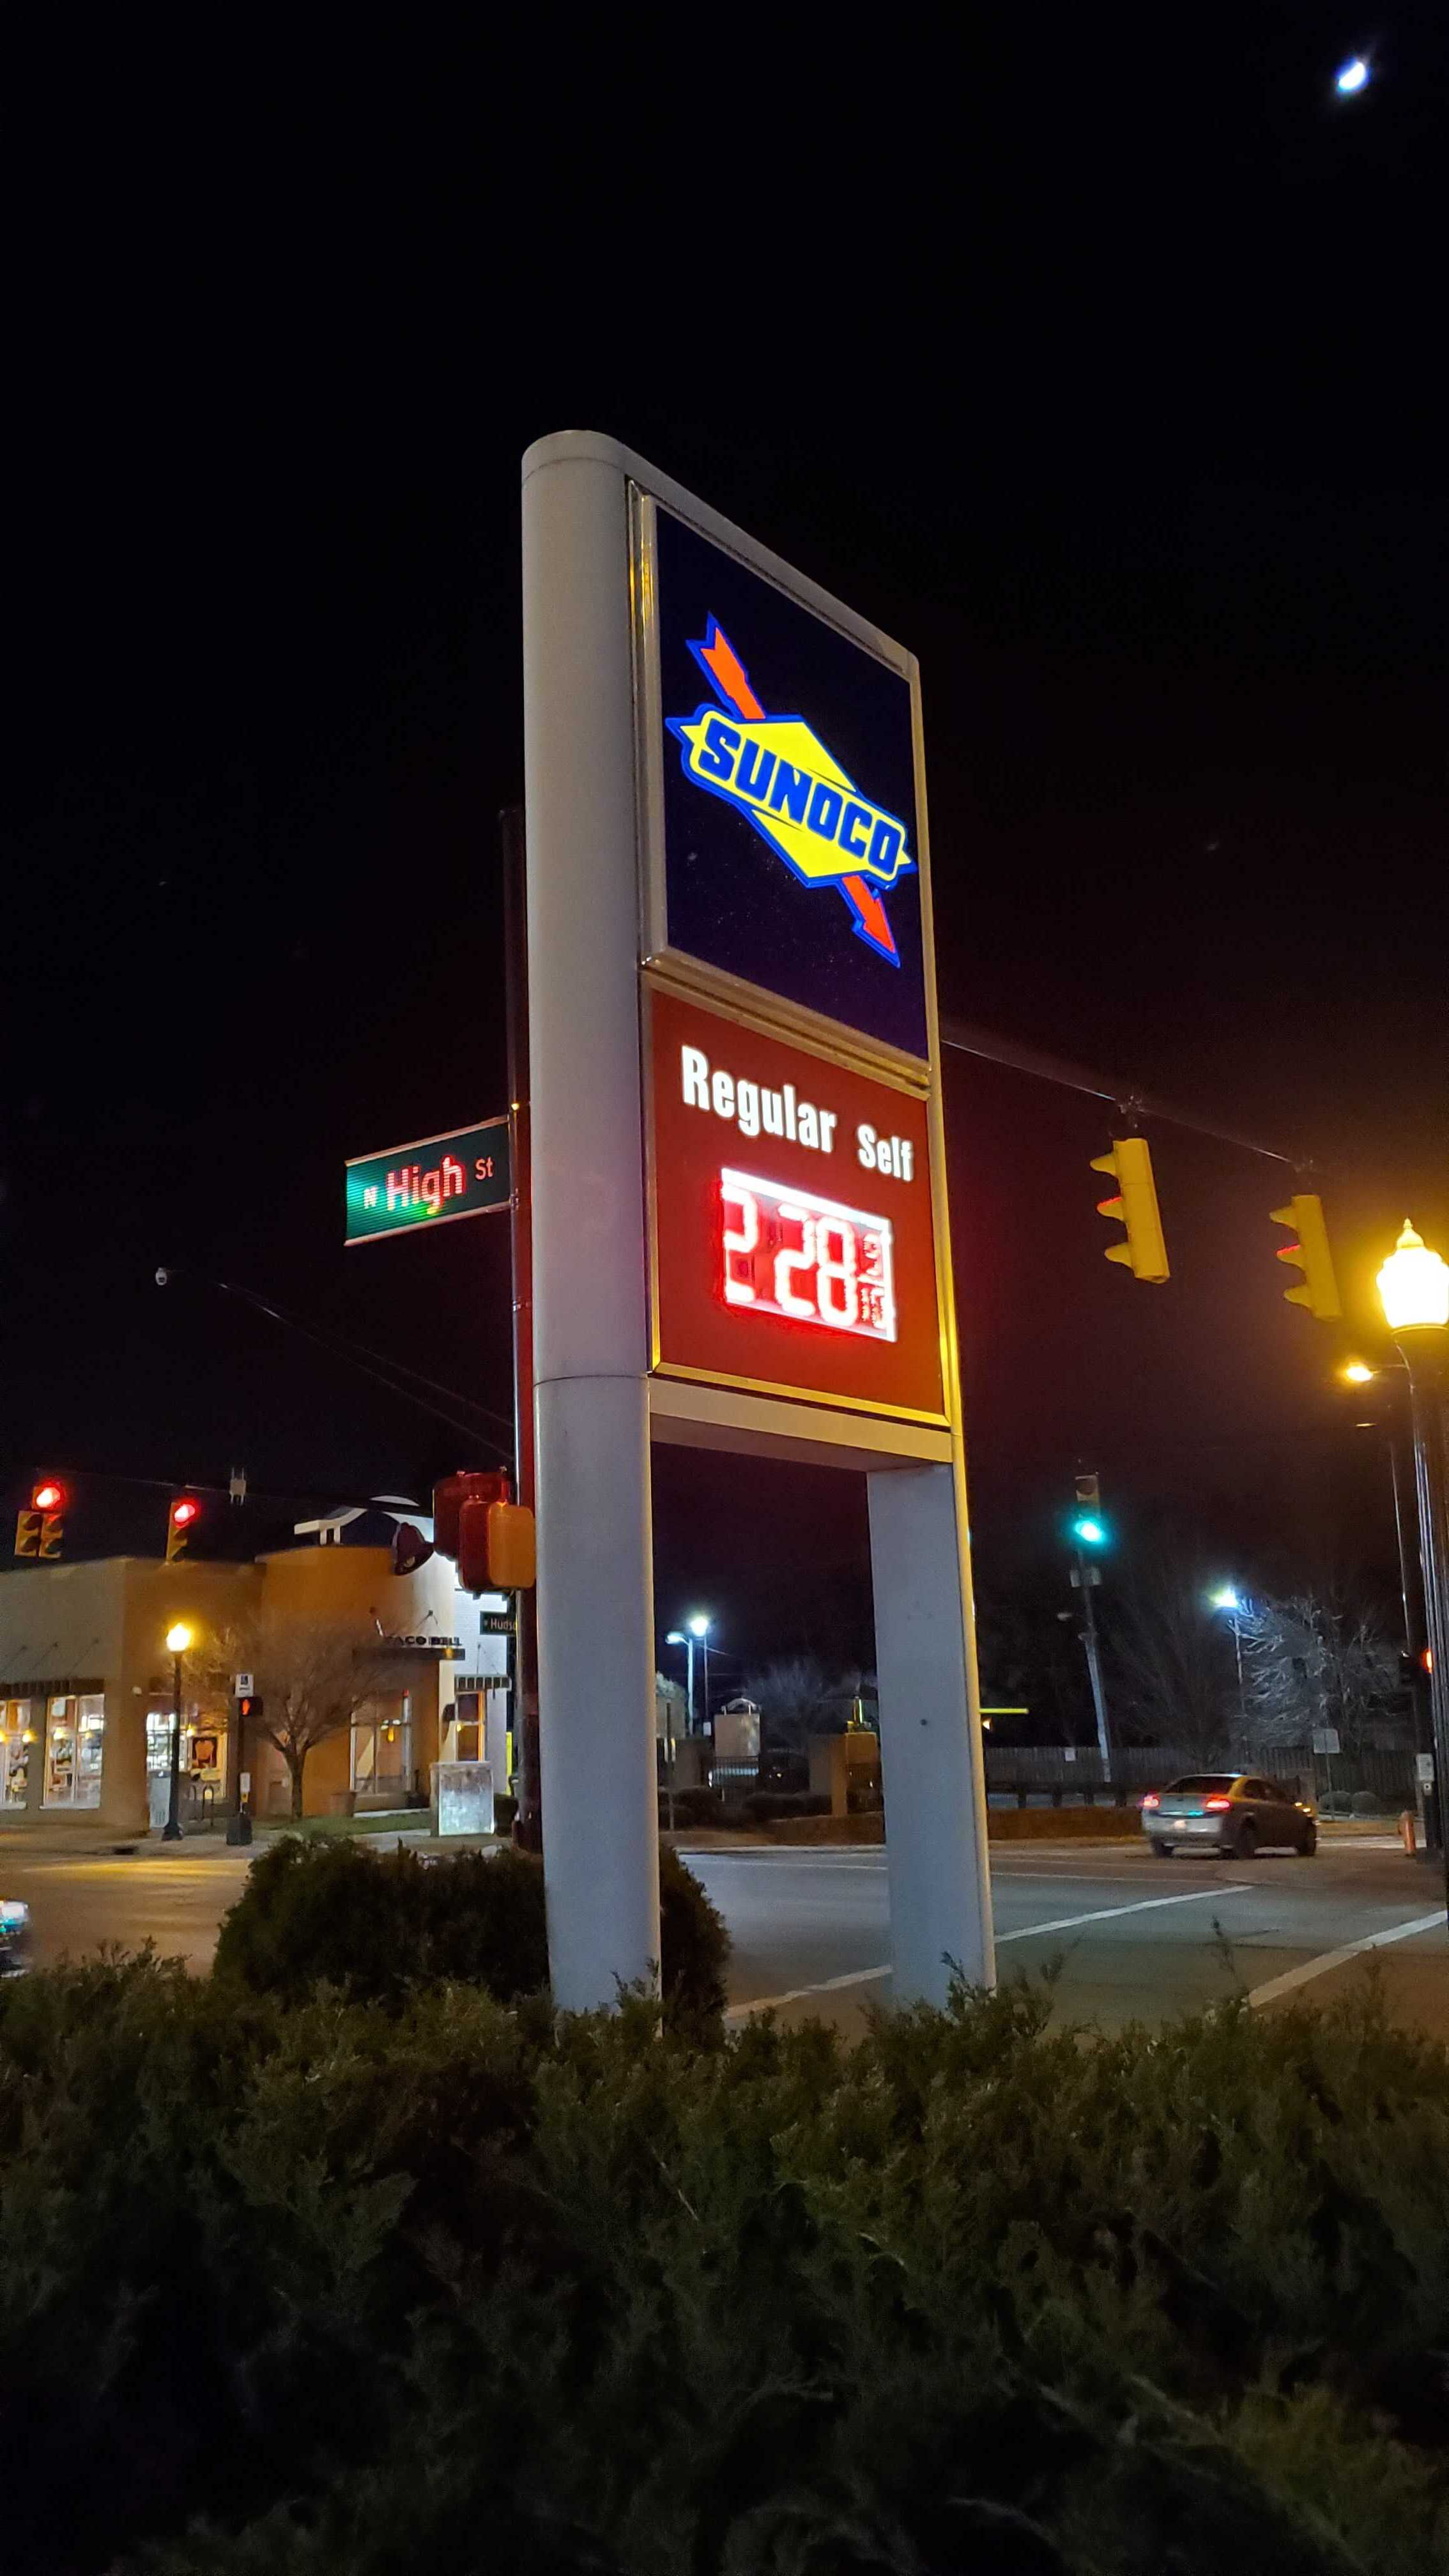 Sunoco Gas sign